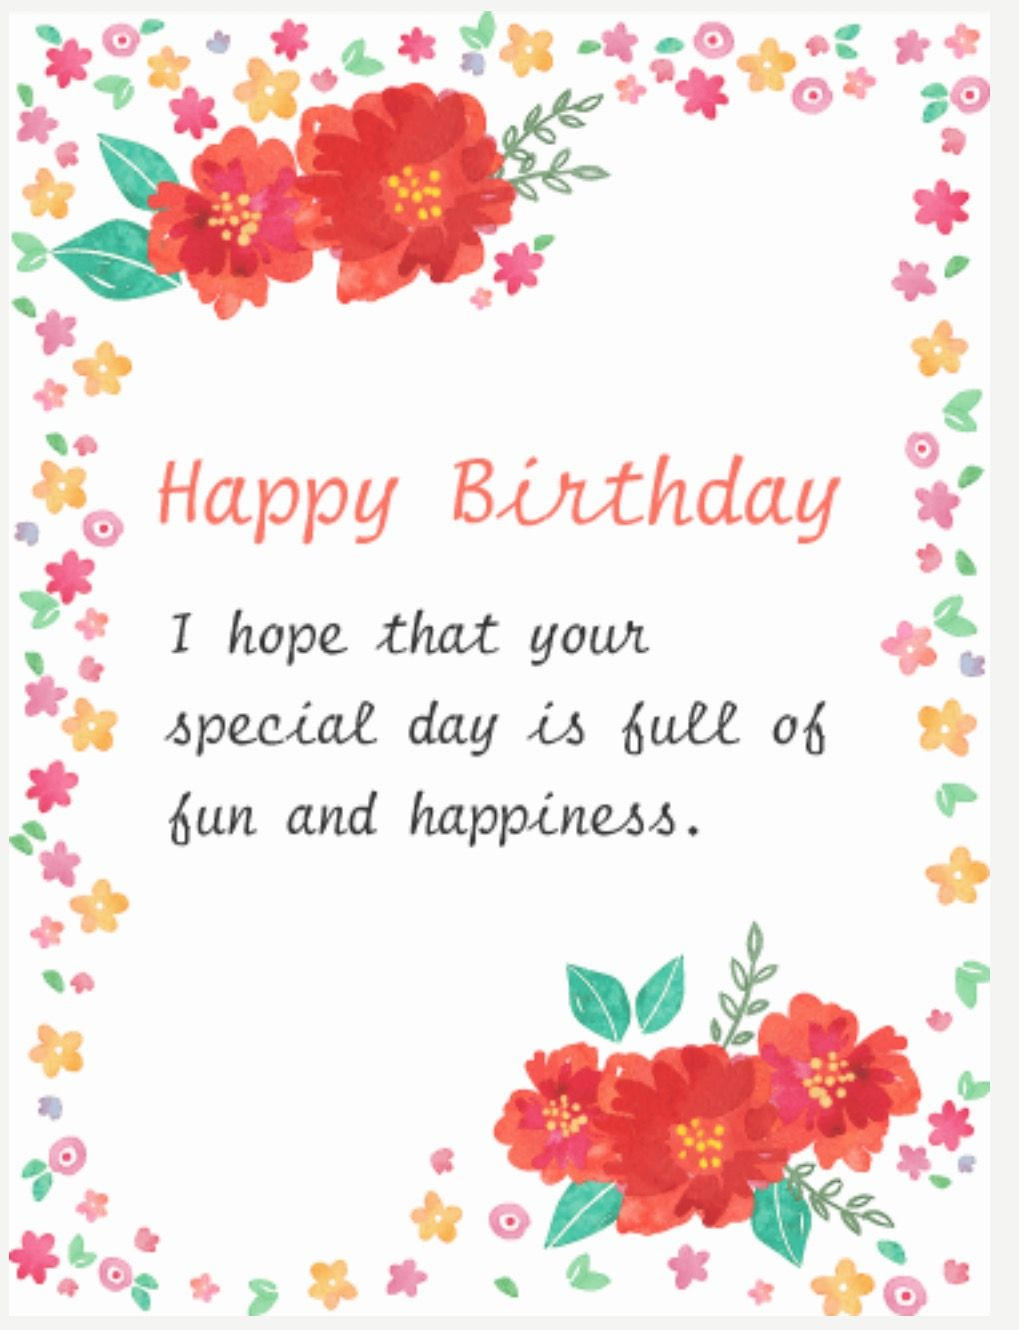 Happy Birthday Birthday Cards Cakes Pinterest